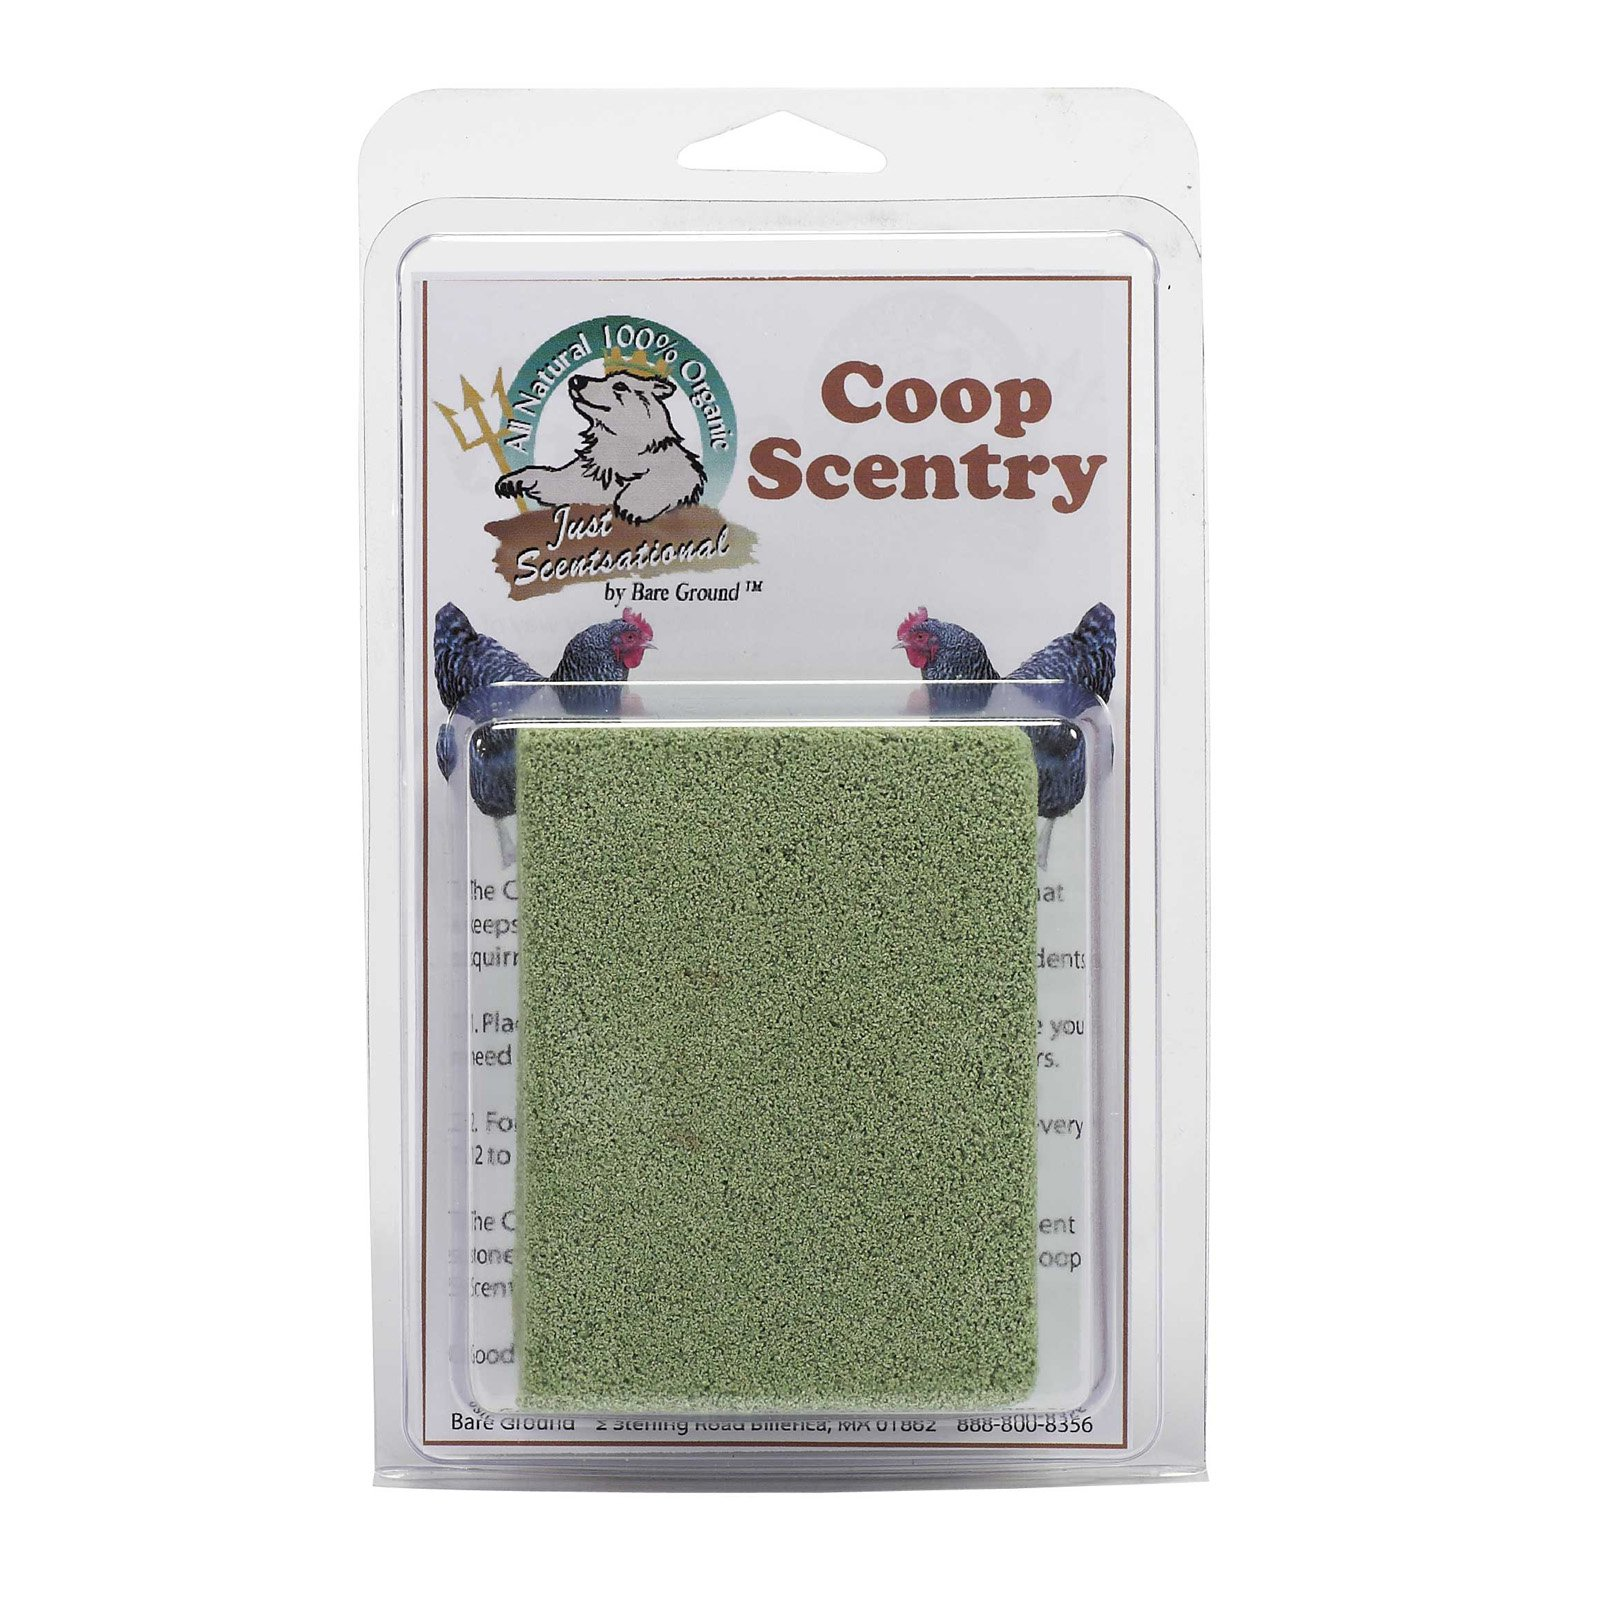 Just Scentsational Coop Scentry by Bare Ground (0063227231986) size 1 ounce